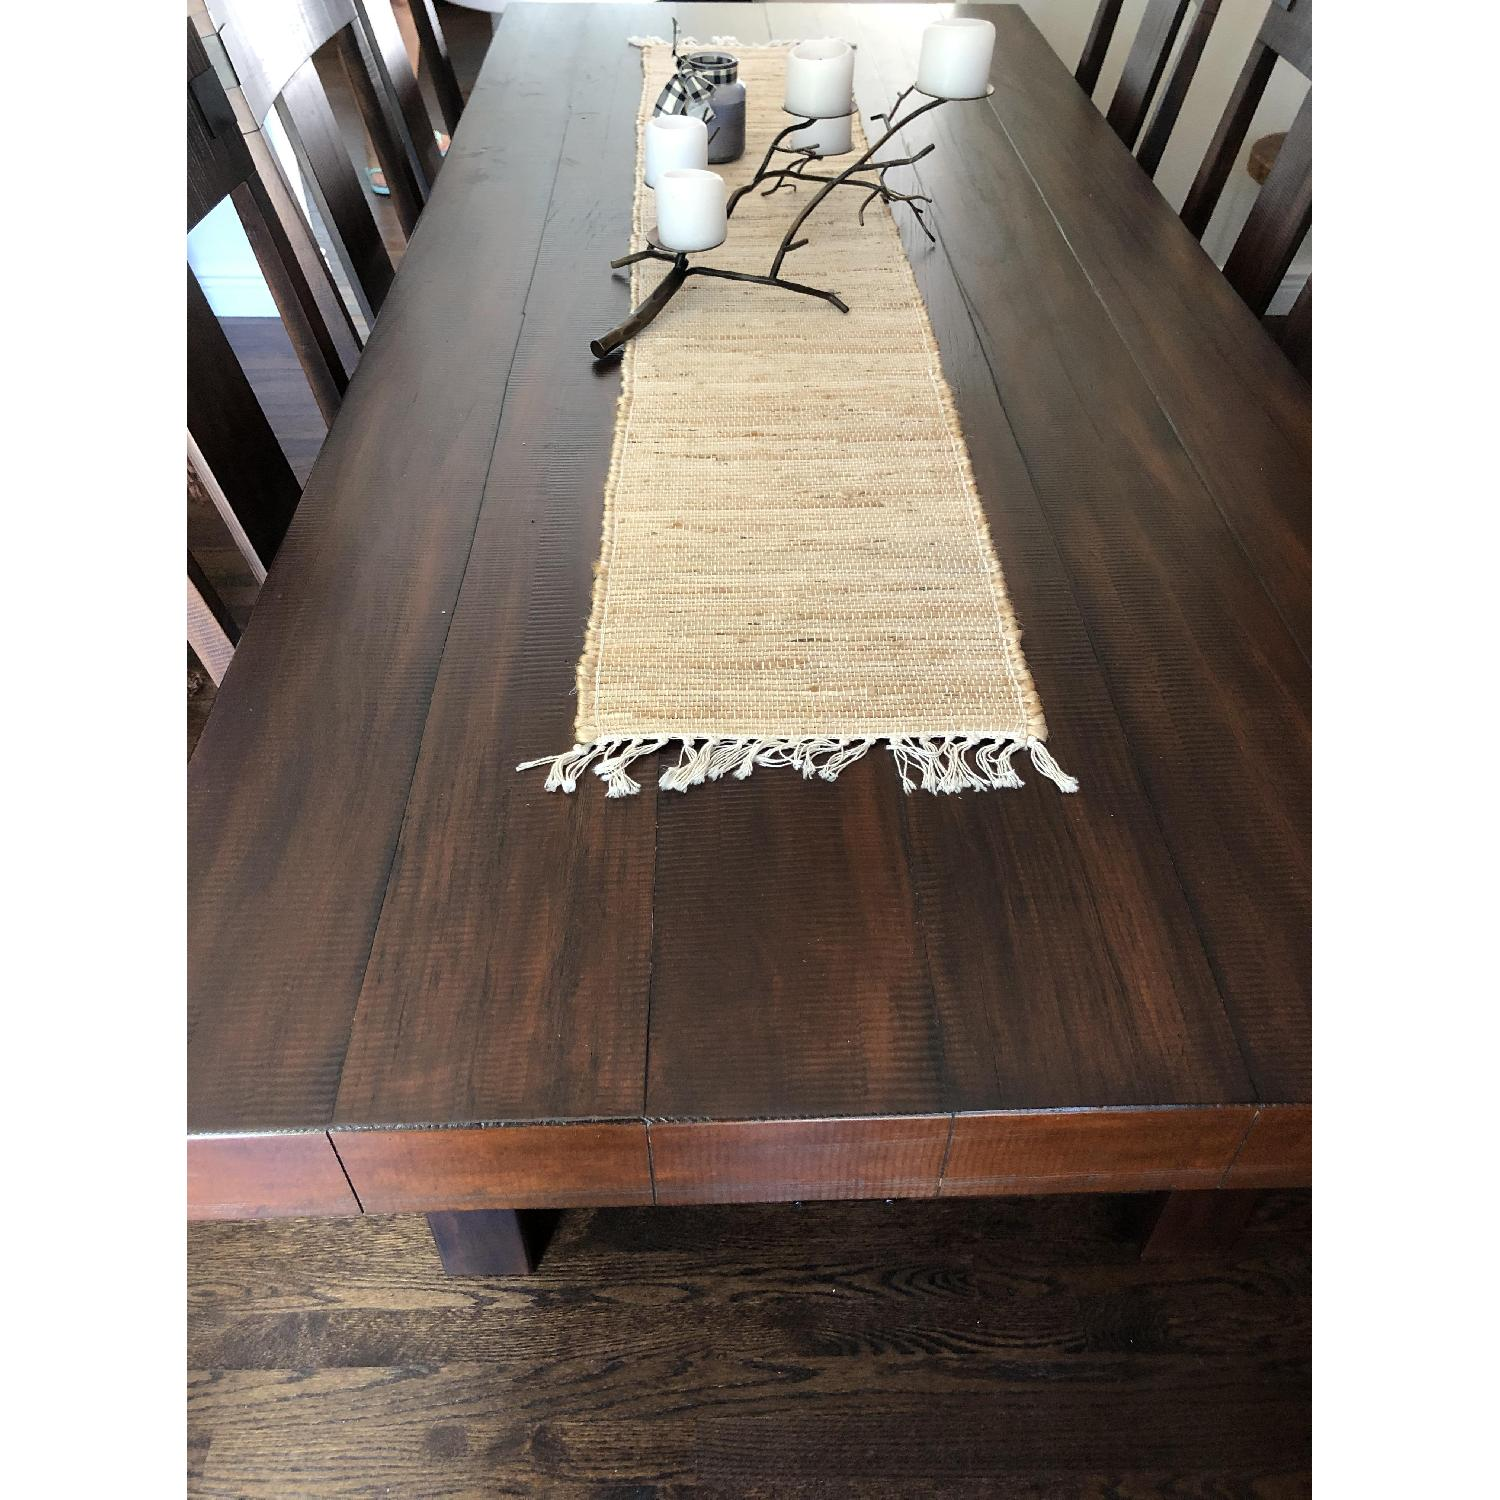 Pier 1 Dining Table w/ 6 Chairs - image-1